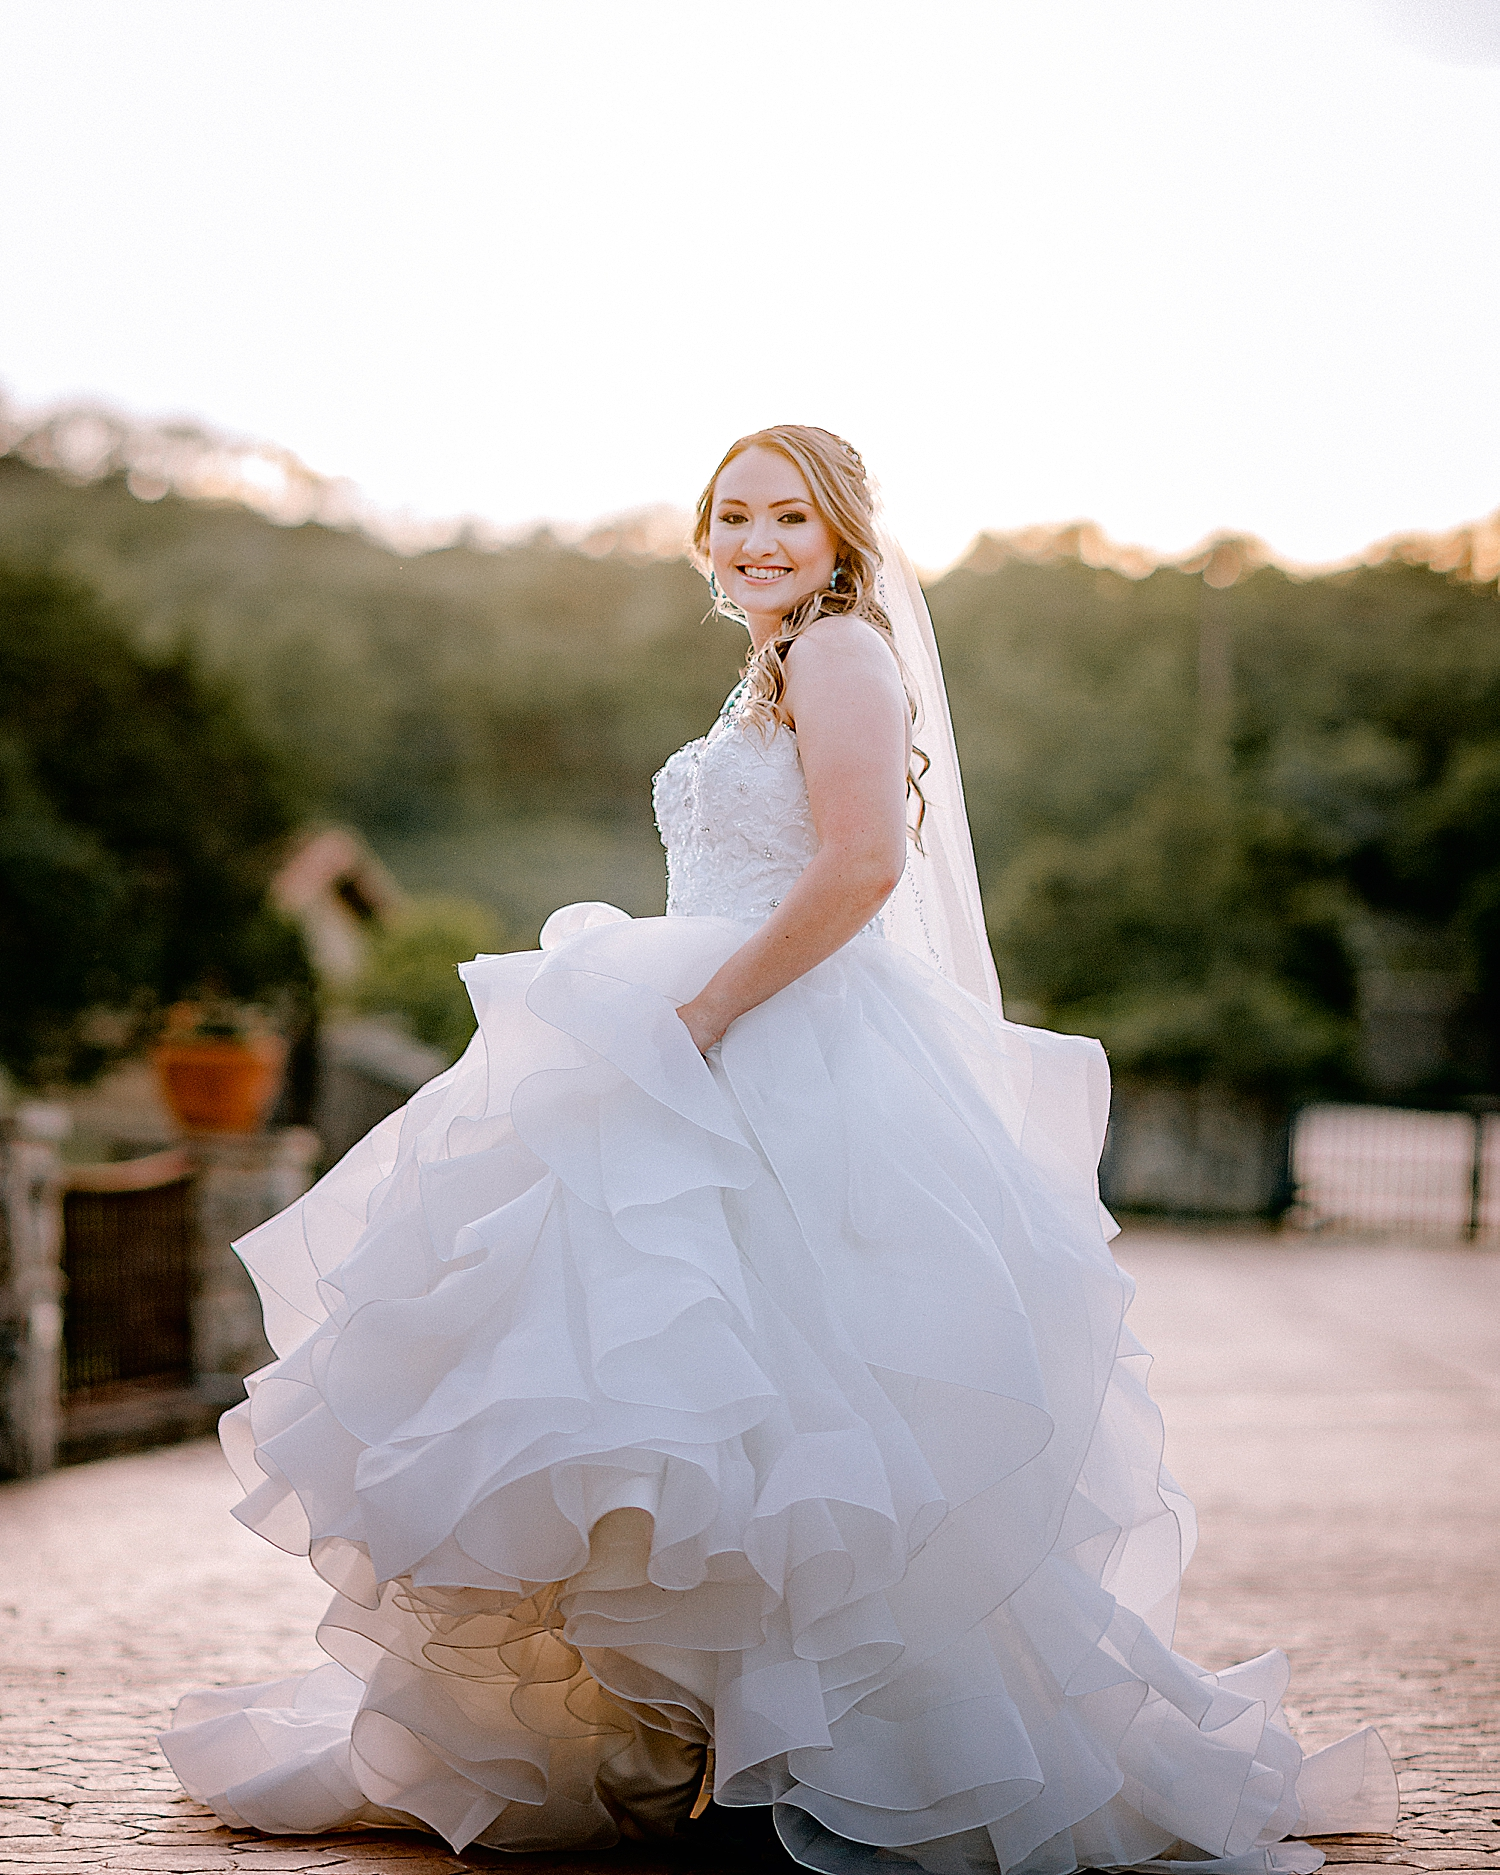 Carly-Barton-Photography-Texas-Bridals-Boerne-Rustic-Wedding-Photos_0016.jpg